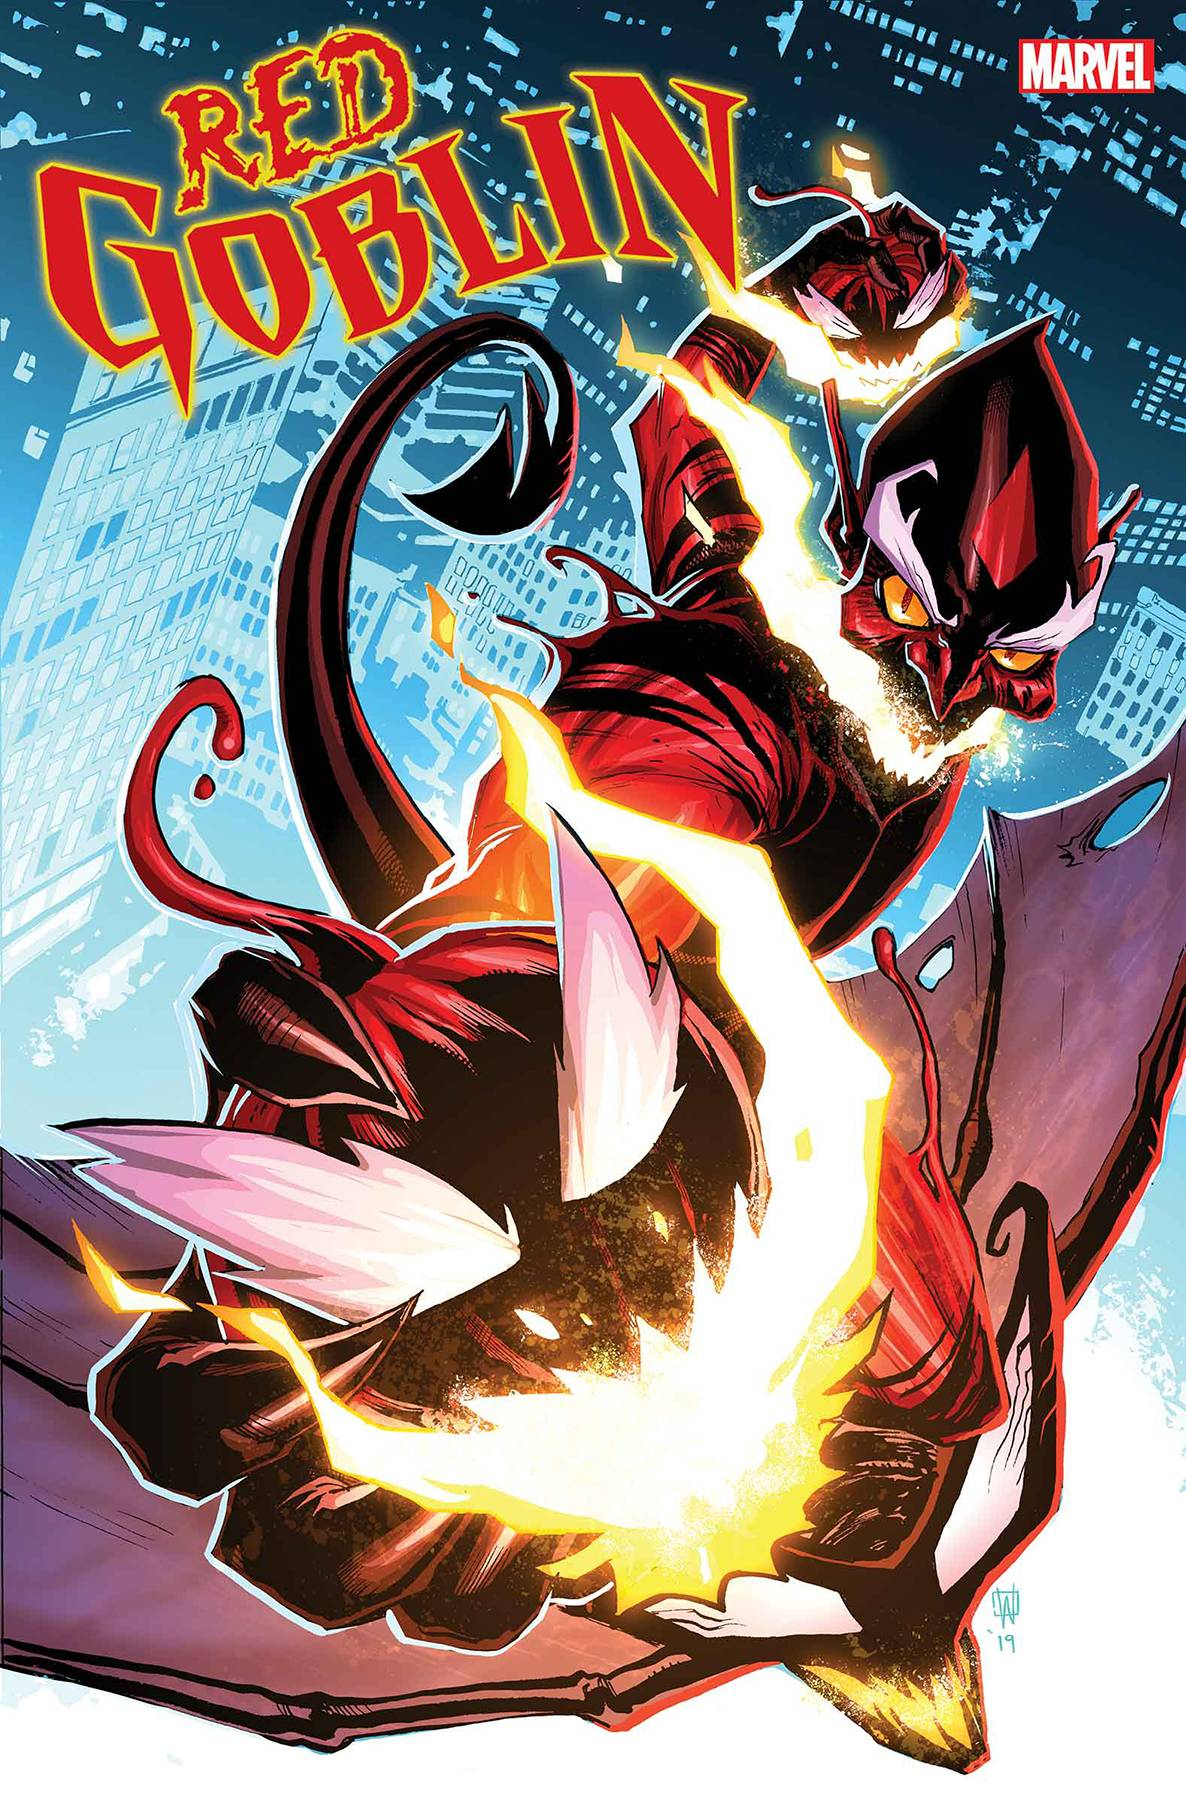 Red Goblin: Red Death #1 (2019)